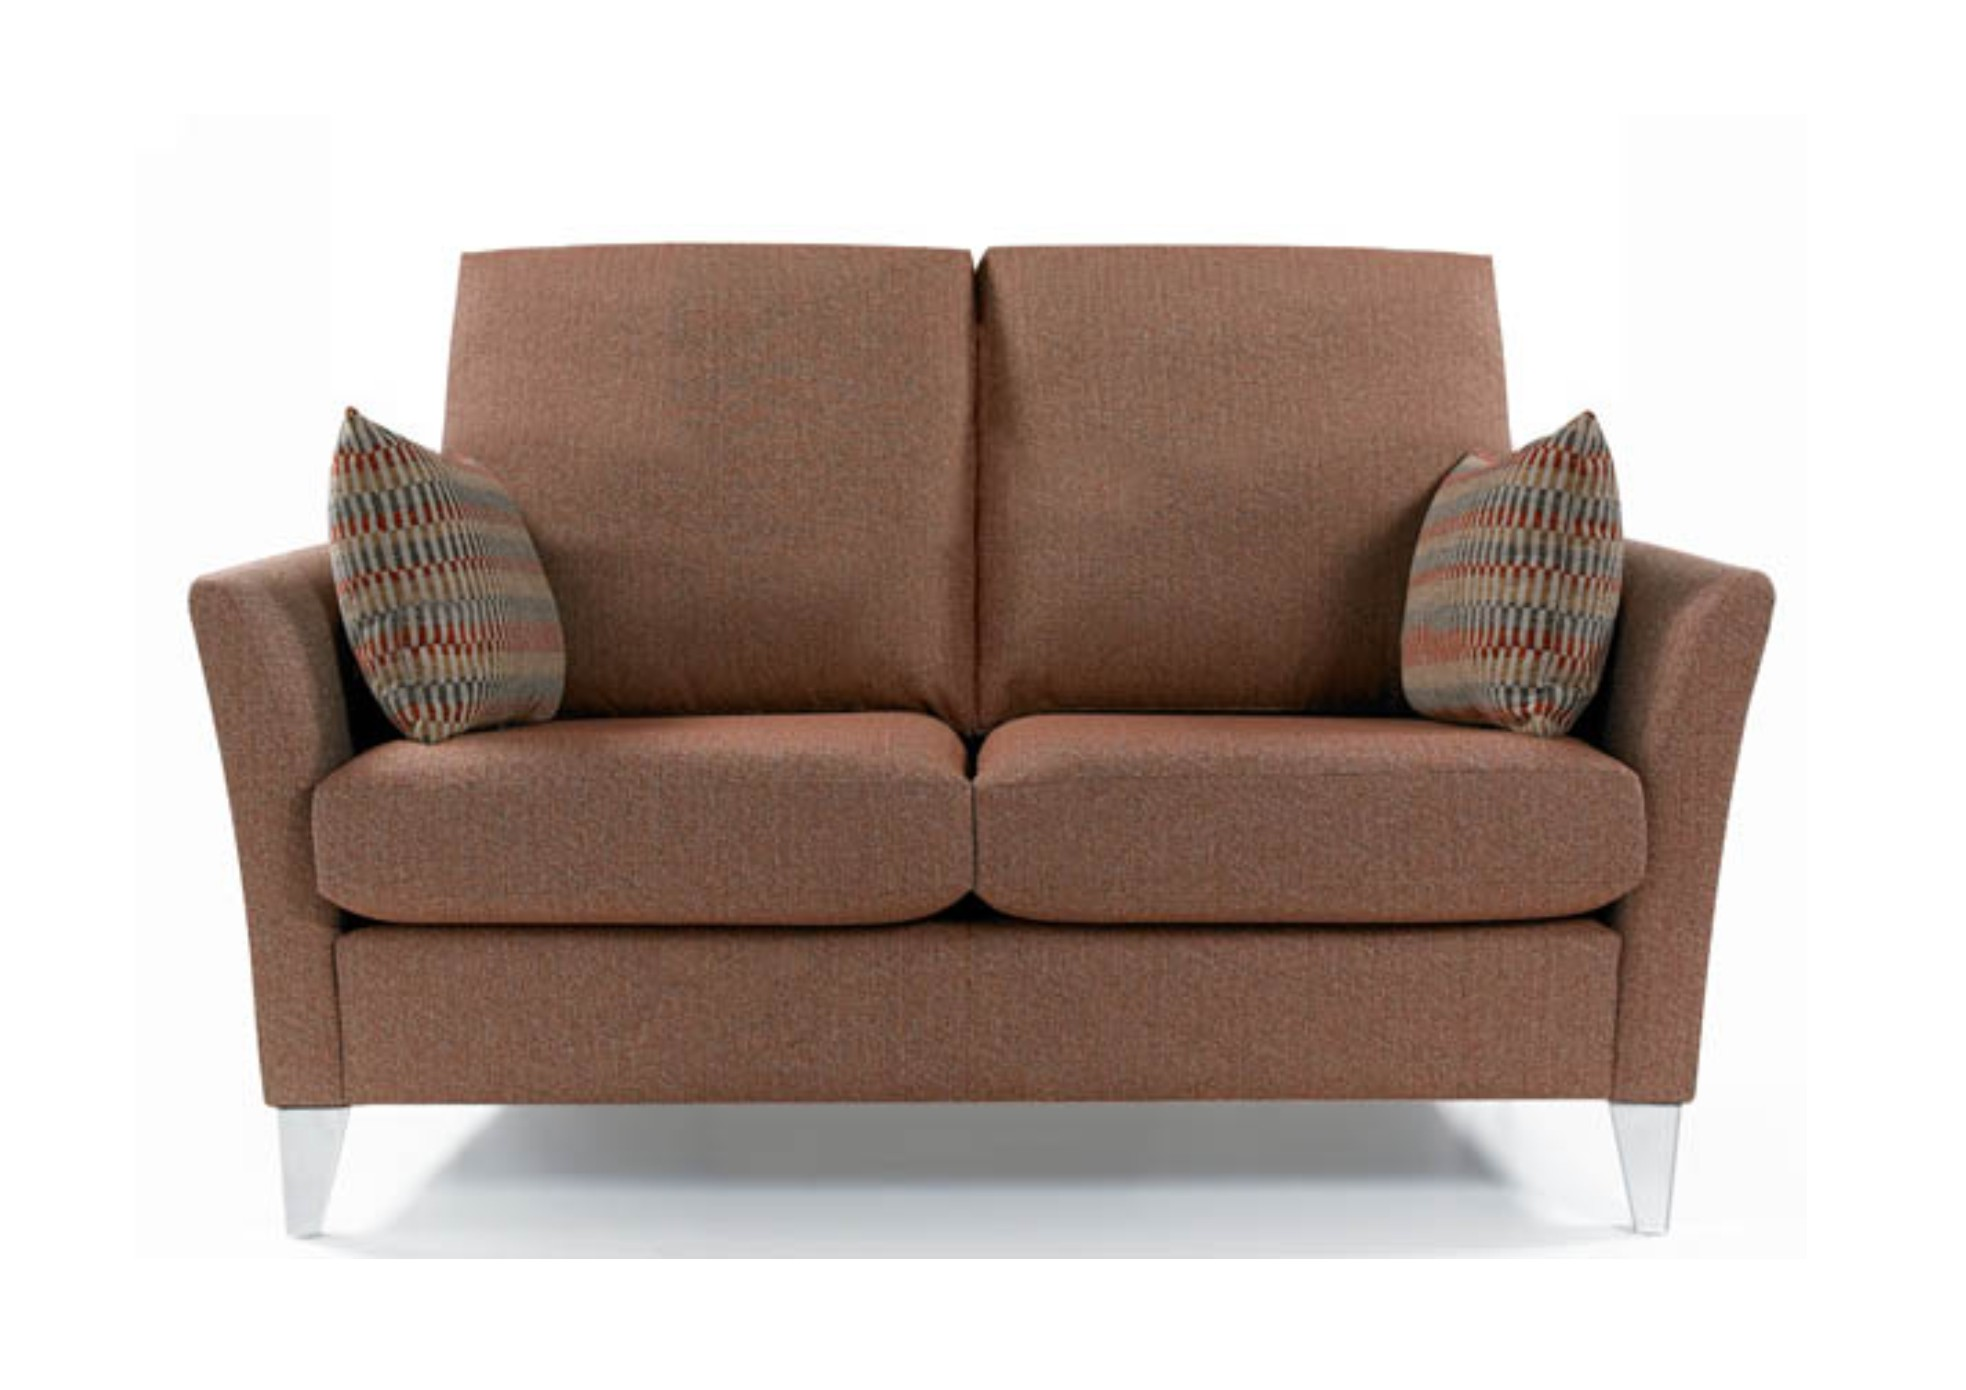 modern low back sofas bristol city nottingham sofascore milo 2 seater sofa contemporary styling with